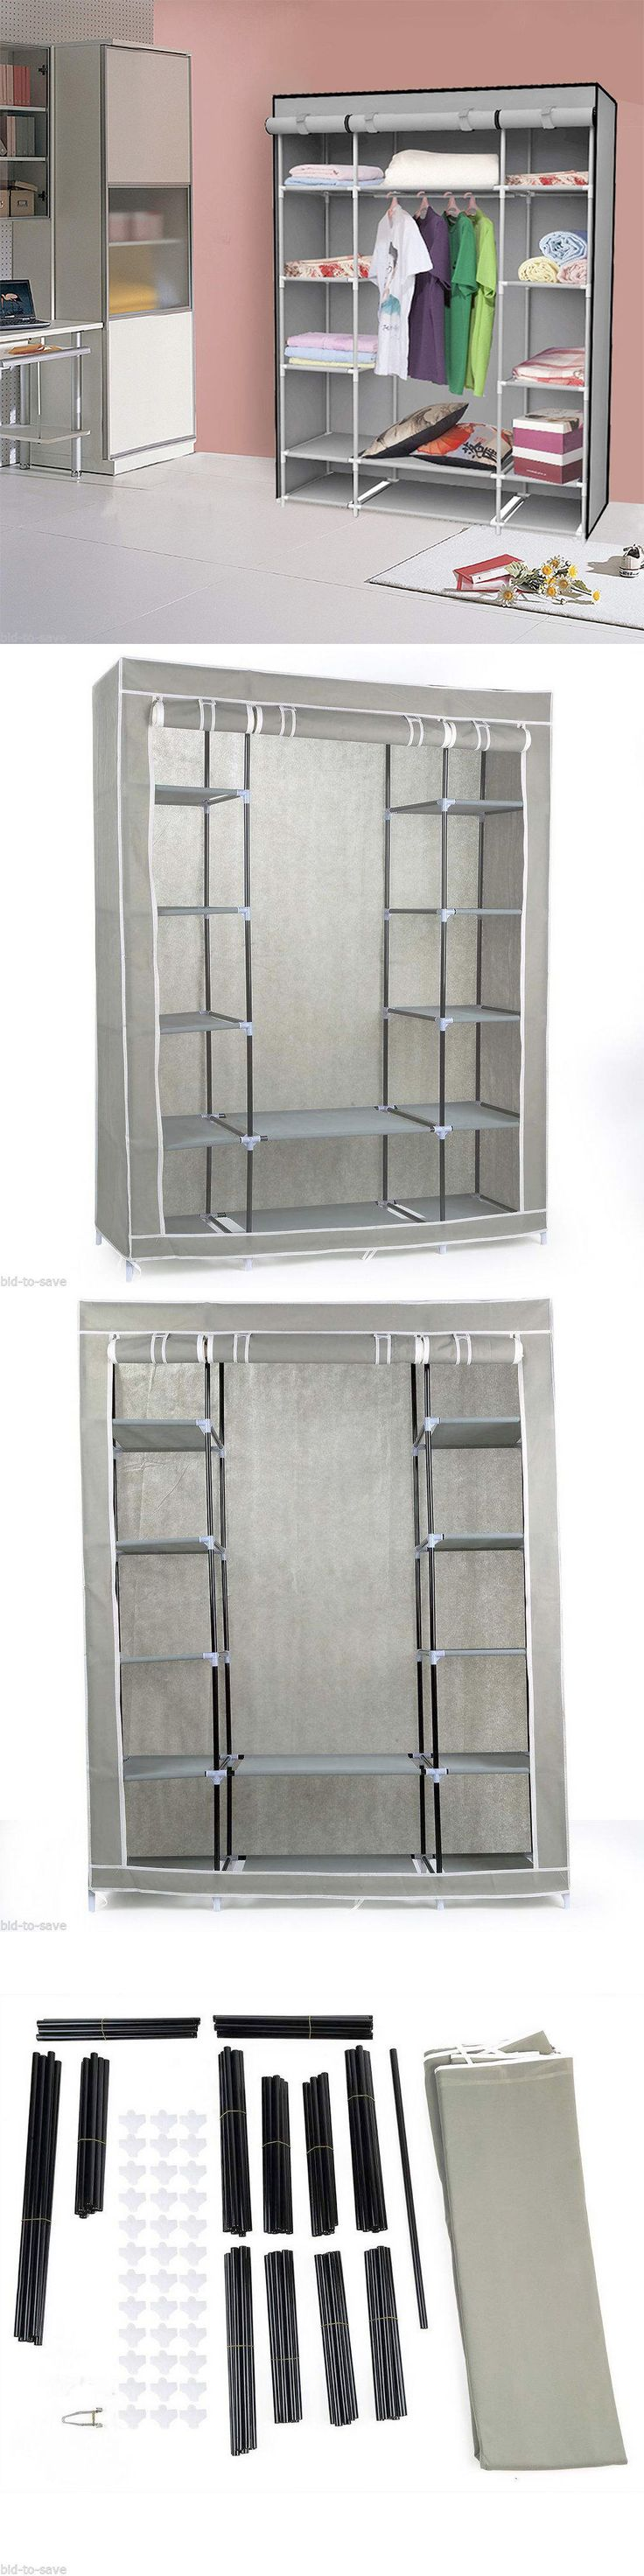 """household items: 53"""" Portable Closet Storage Organizer Wardrobe Clothes Rack With Shelves Grey -> BUY IT NOW ONLY: $35.71 on eBay!"""